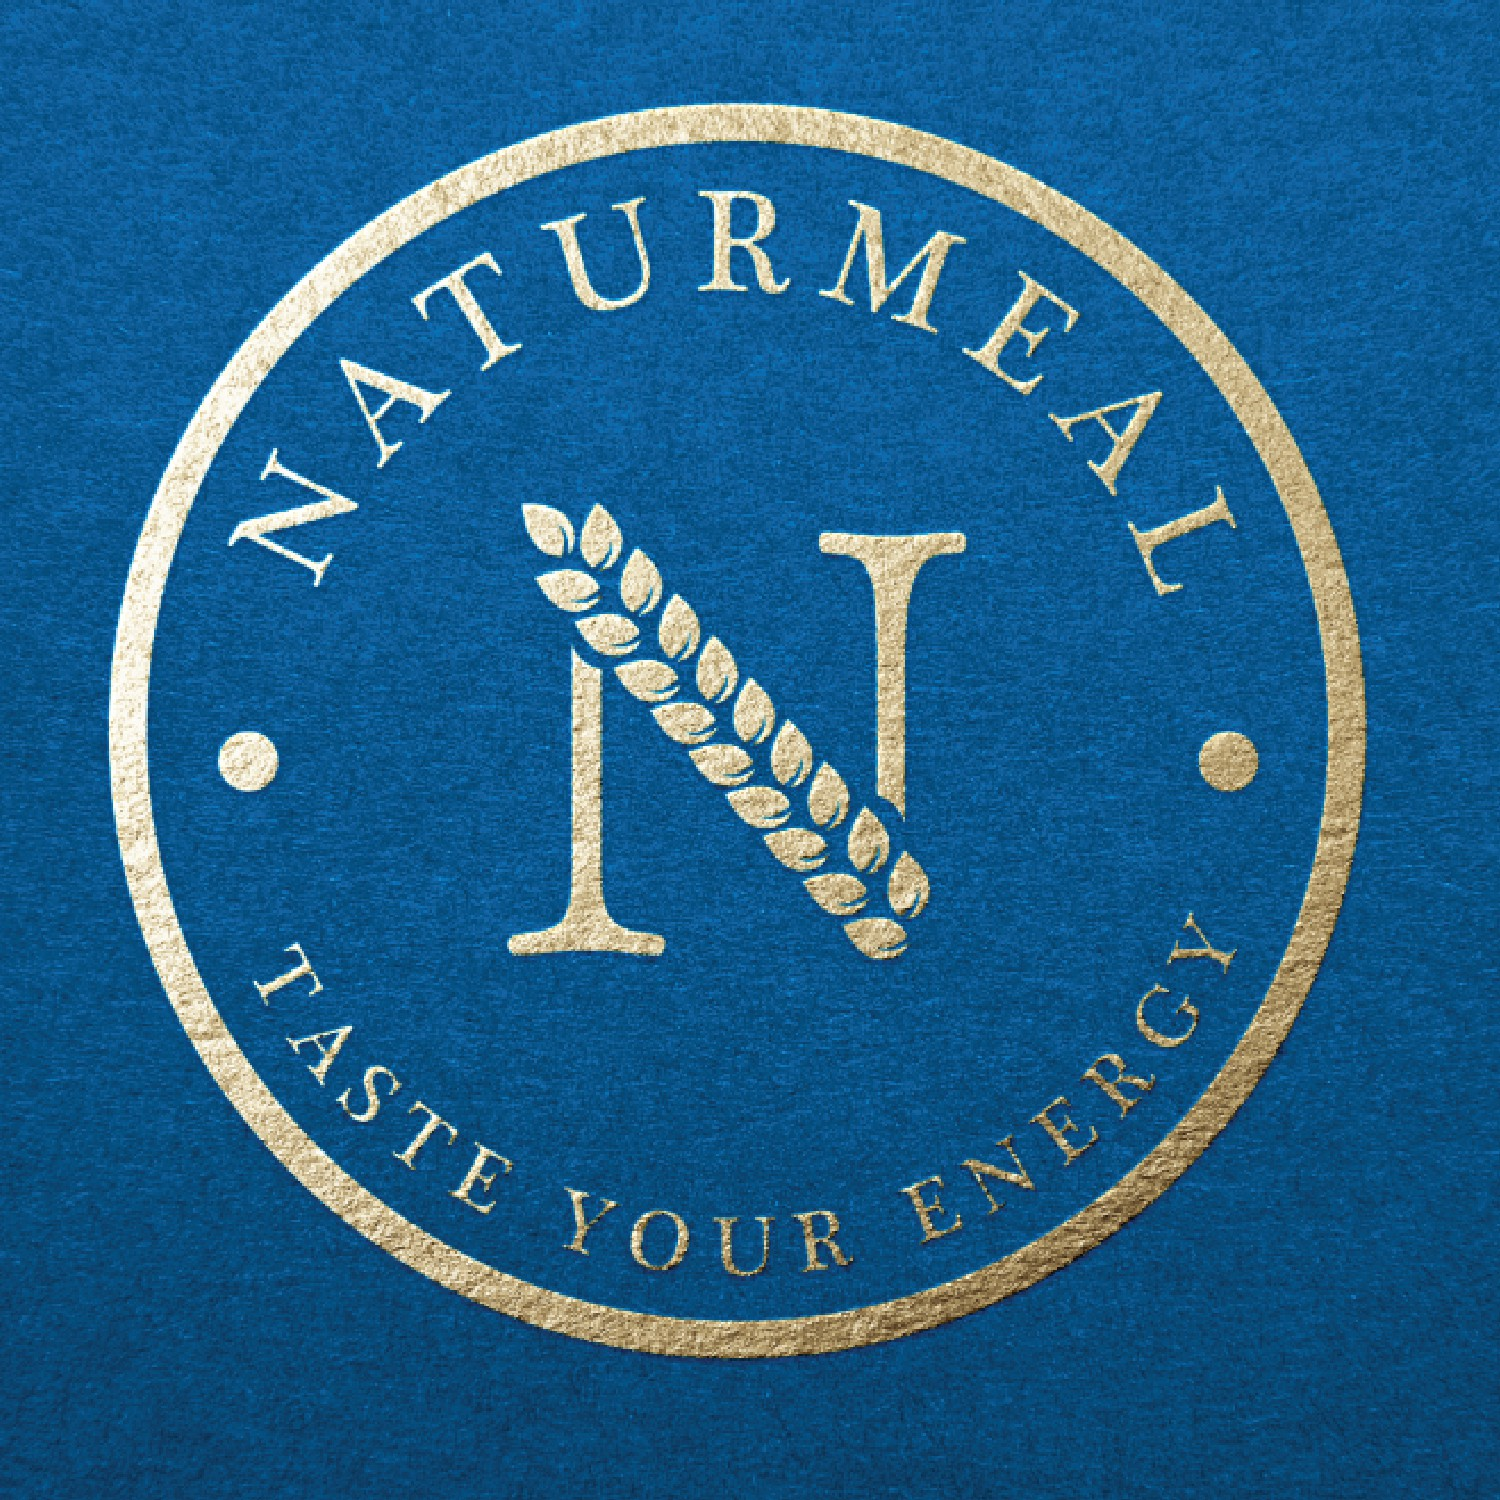 Design a logo for a luxury meal replacement brand named Naturmeal